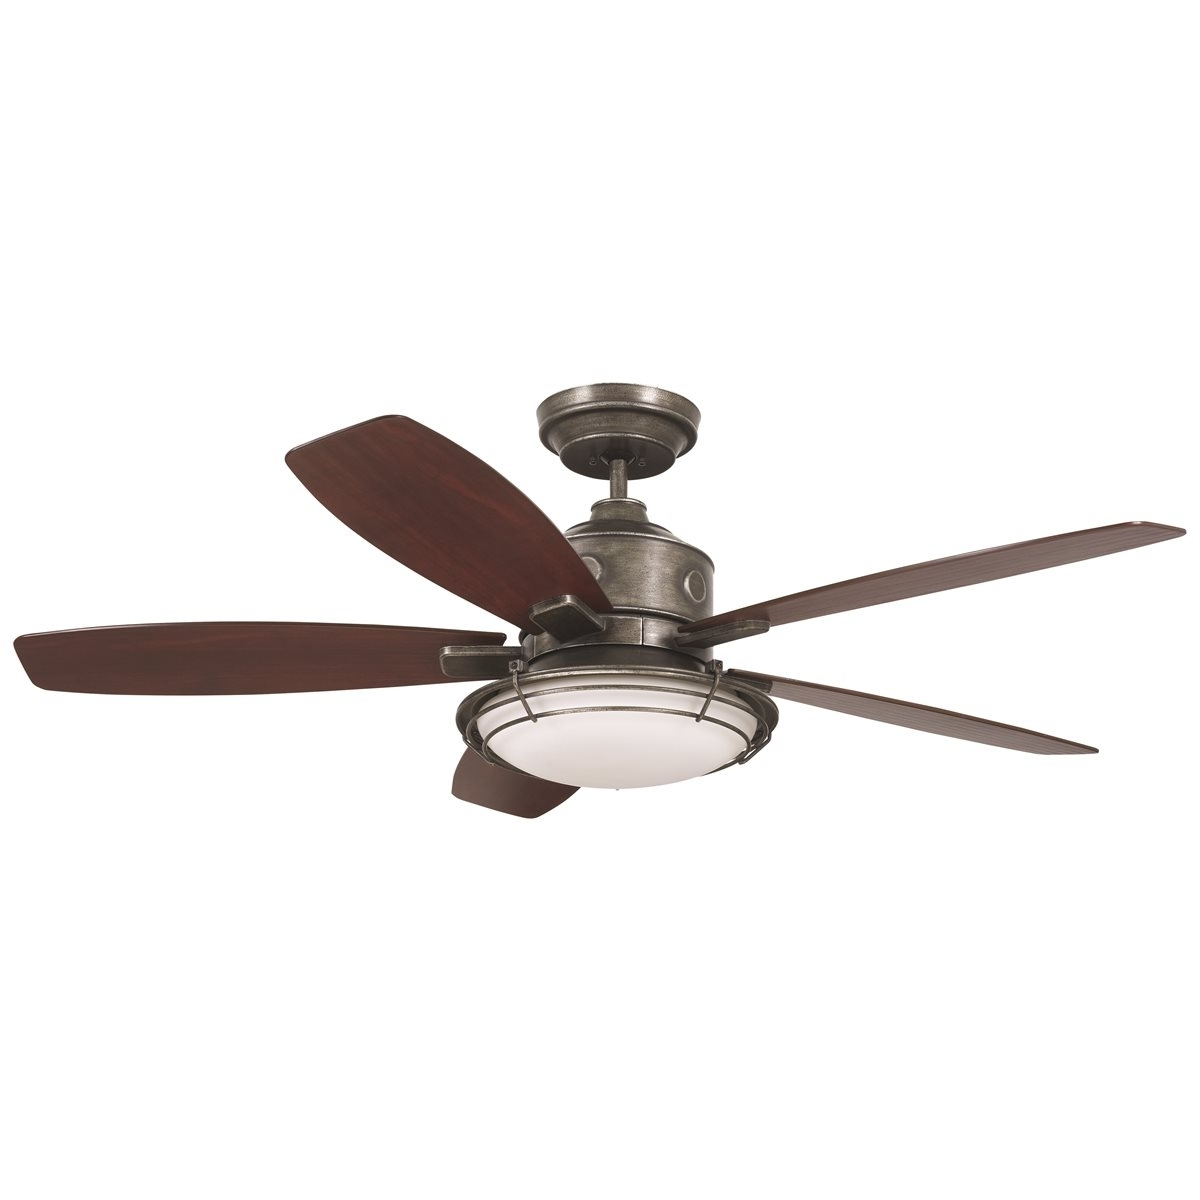 Emerson Rockpointe Outdoor Ceiling Fan – Vintage Steel One Each With Regard To Famous Wet Rated Emerson Outdoor Ceiling Fans (View 8 of 20)